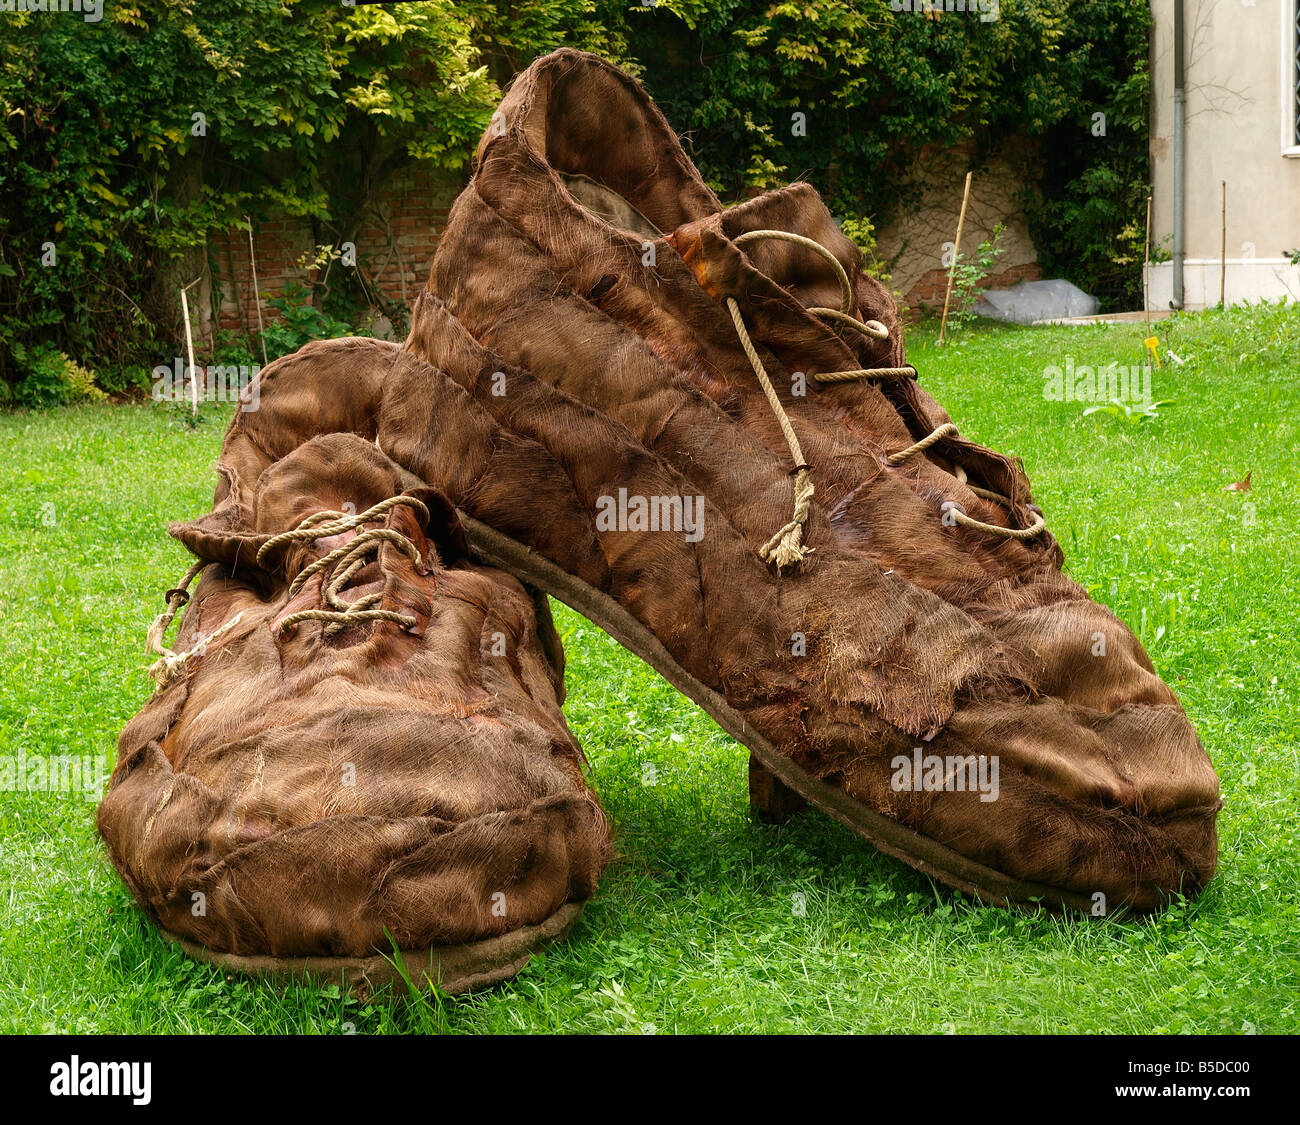 Big Statue of old worn out boots (shoes) in the Park of Portogruaro - Italian city, Northern Italy near Adriatic - Stock Image